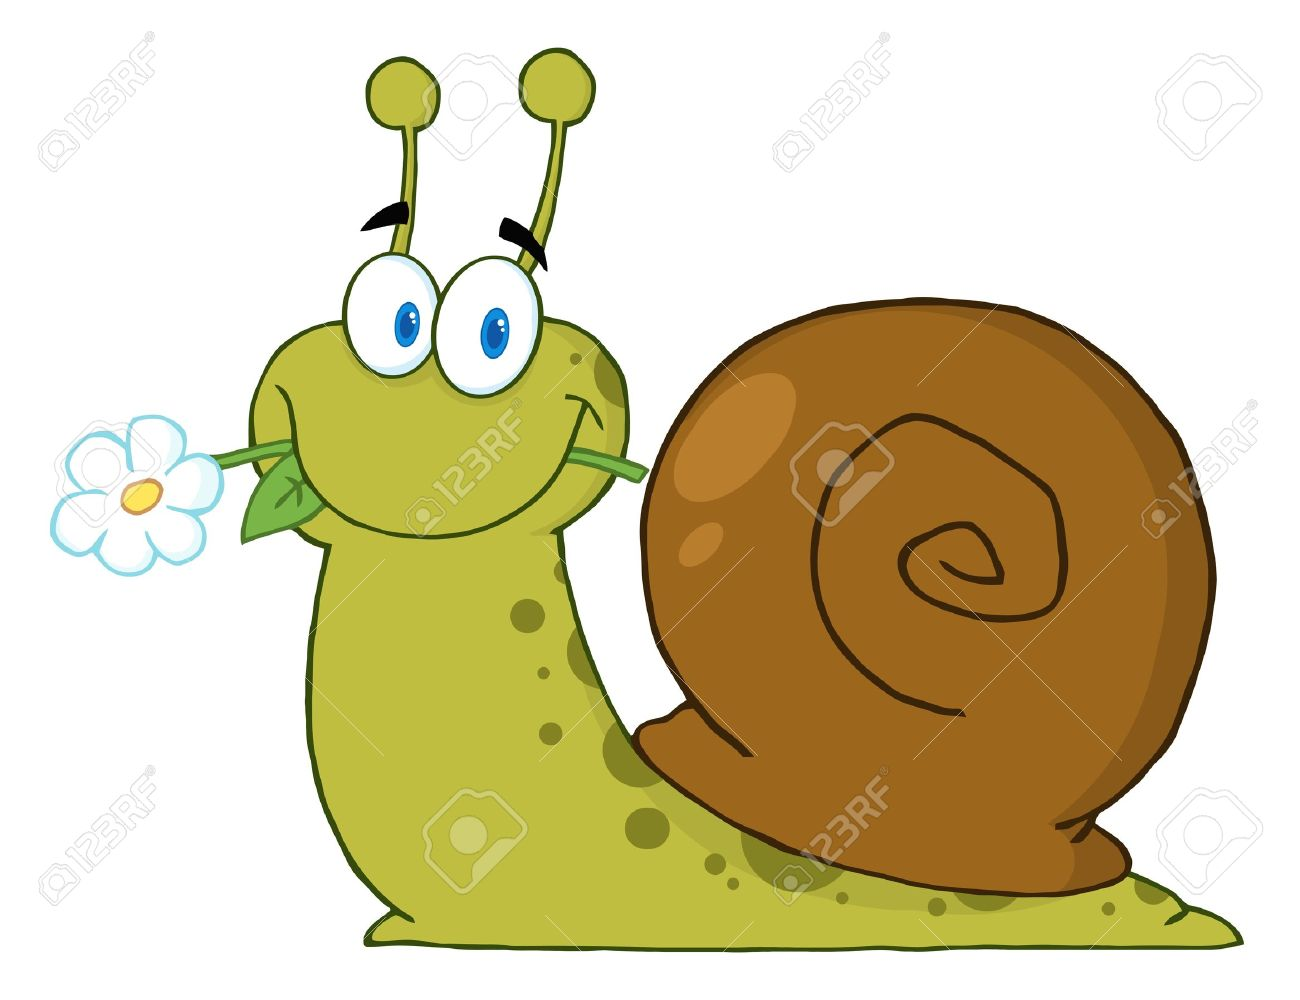 Happy Cartoon Snail With A Flower In Its Mouth Stock Vector - 9152416